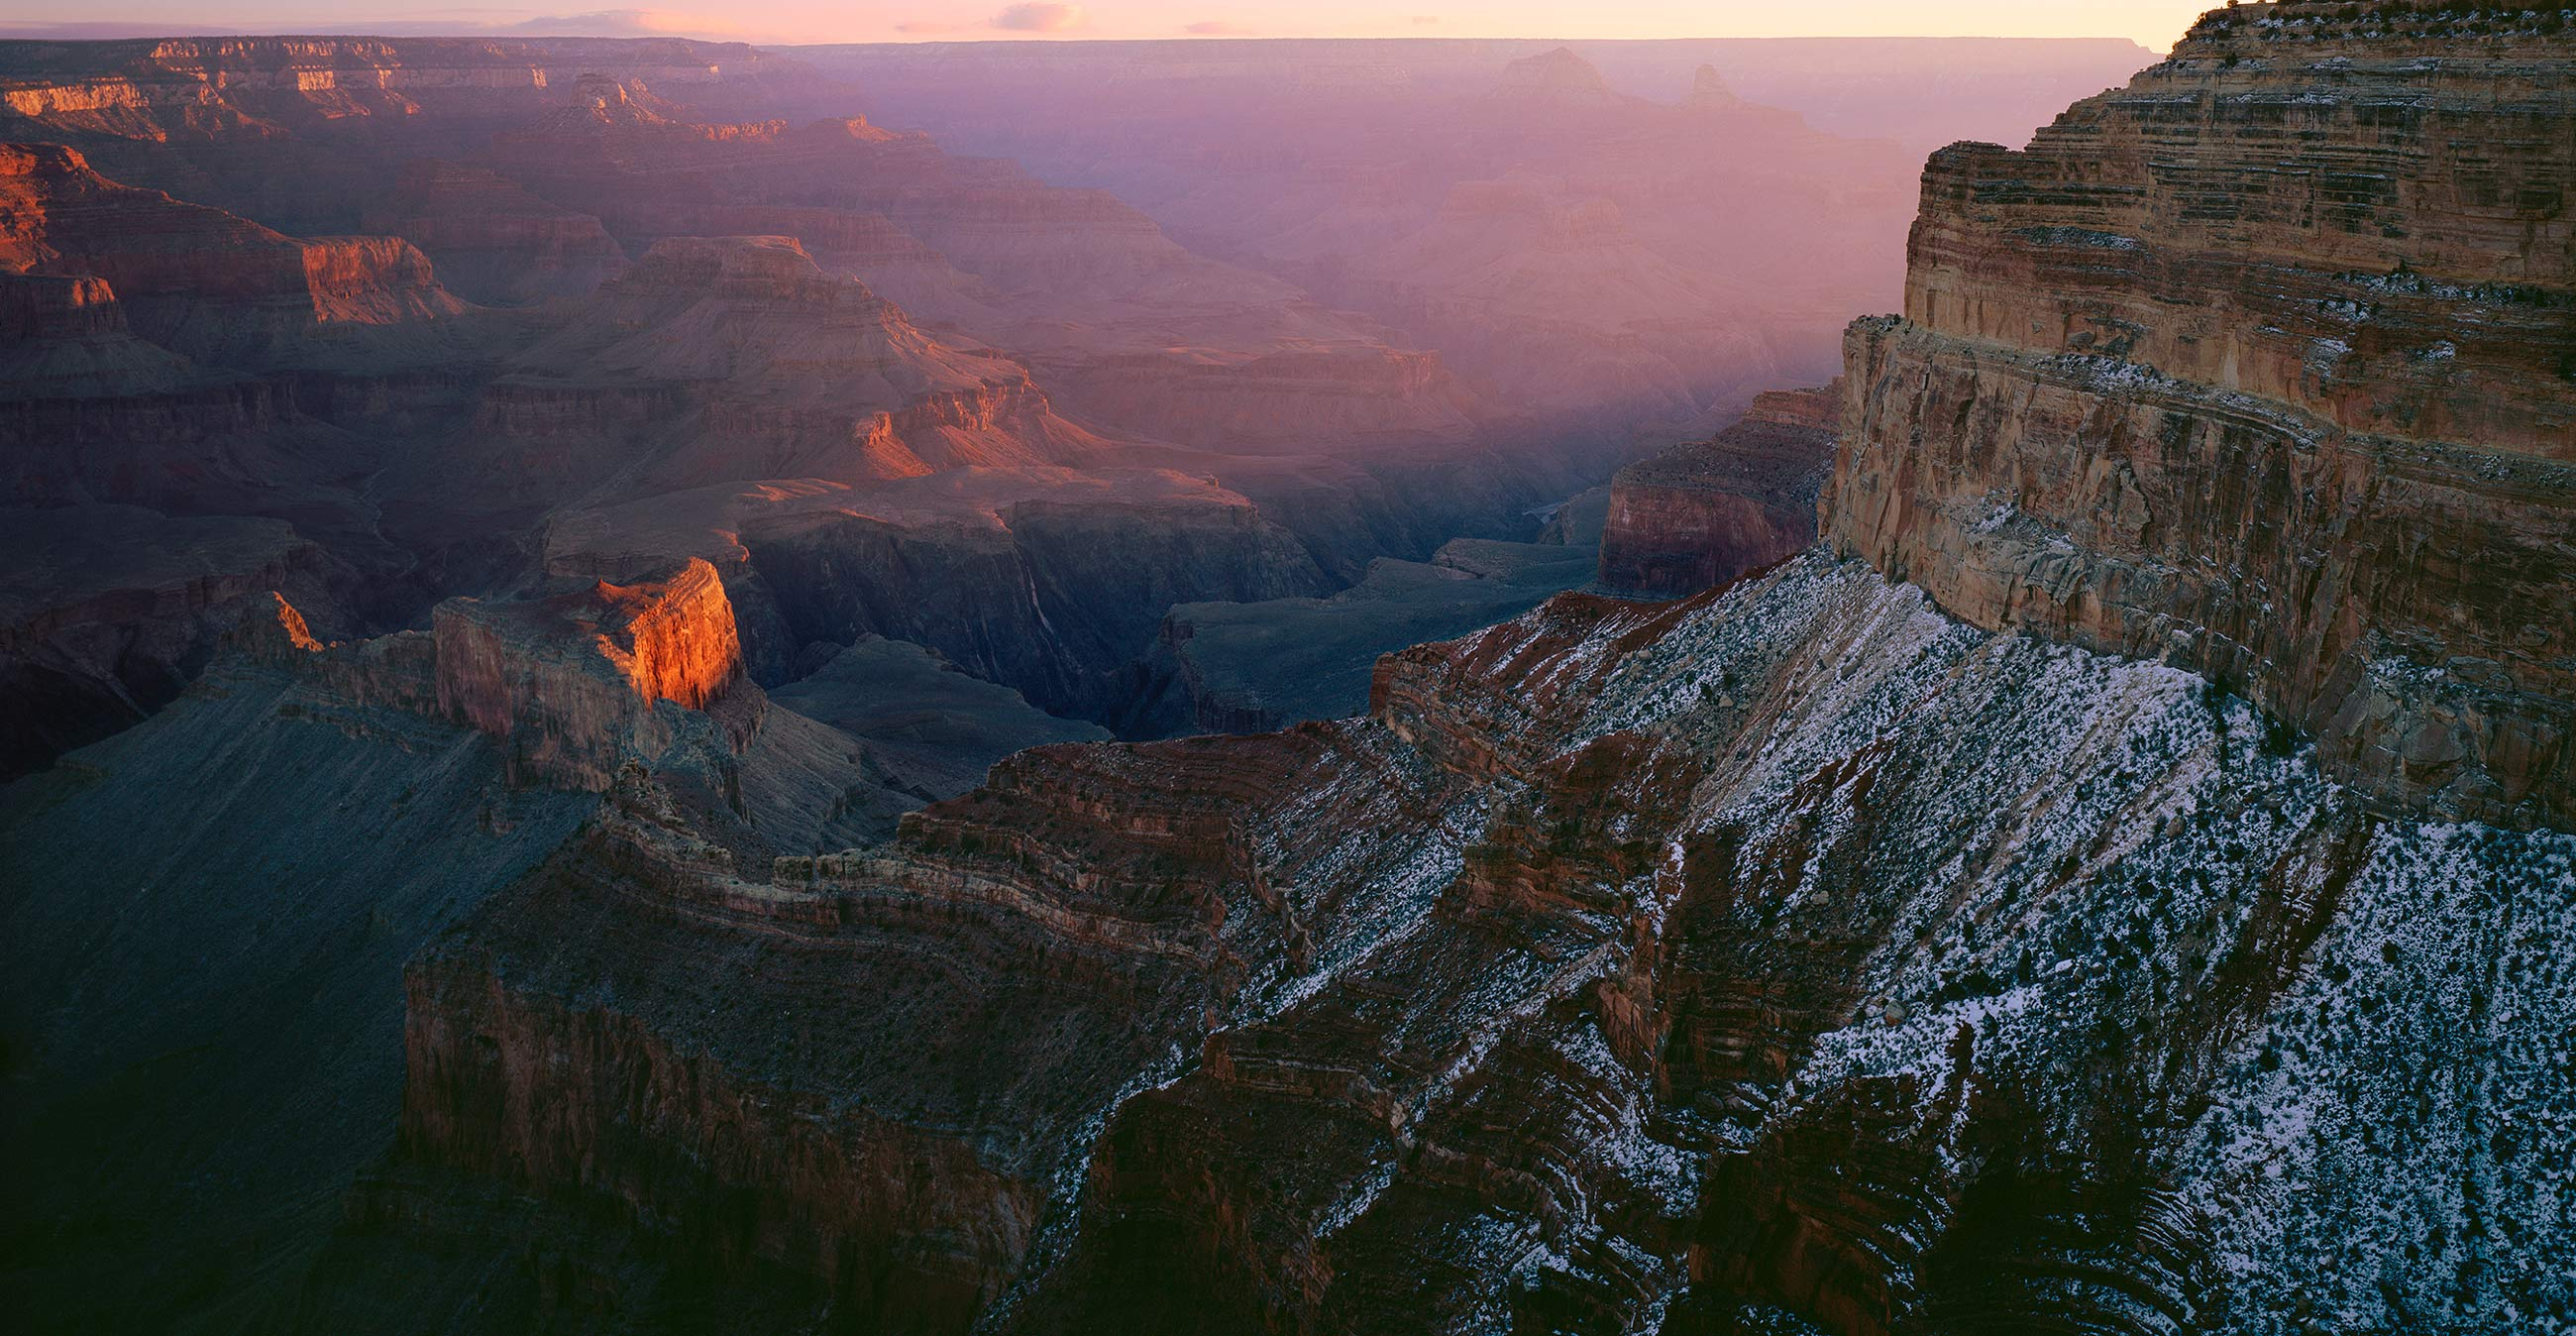 415 Light Across the Canyon, Grand Canyon National Park, Arizona